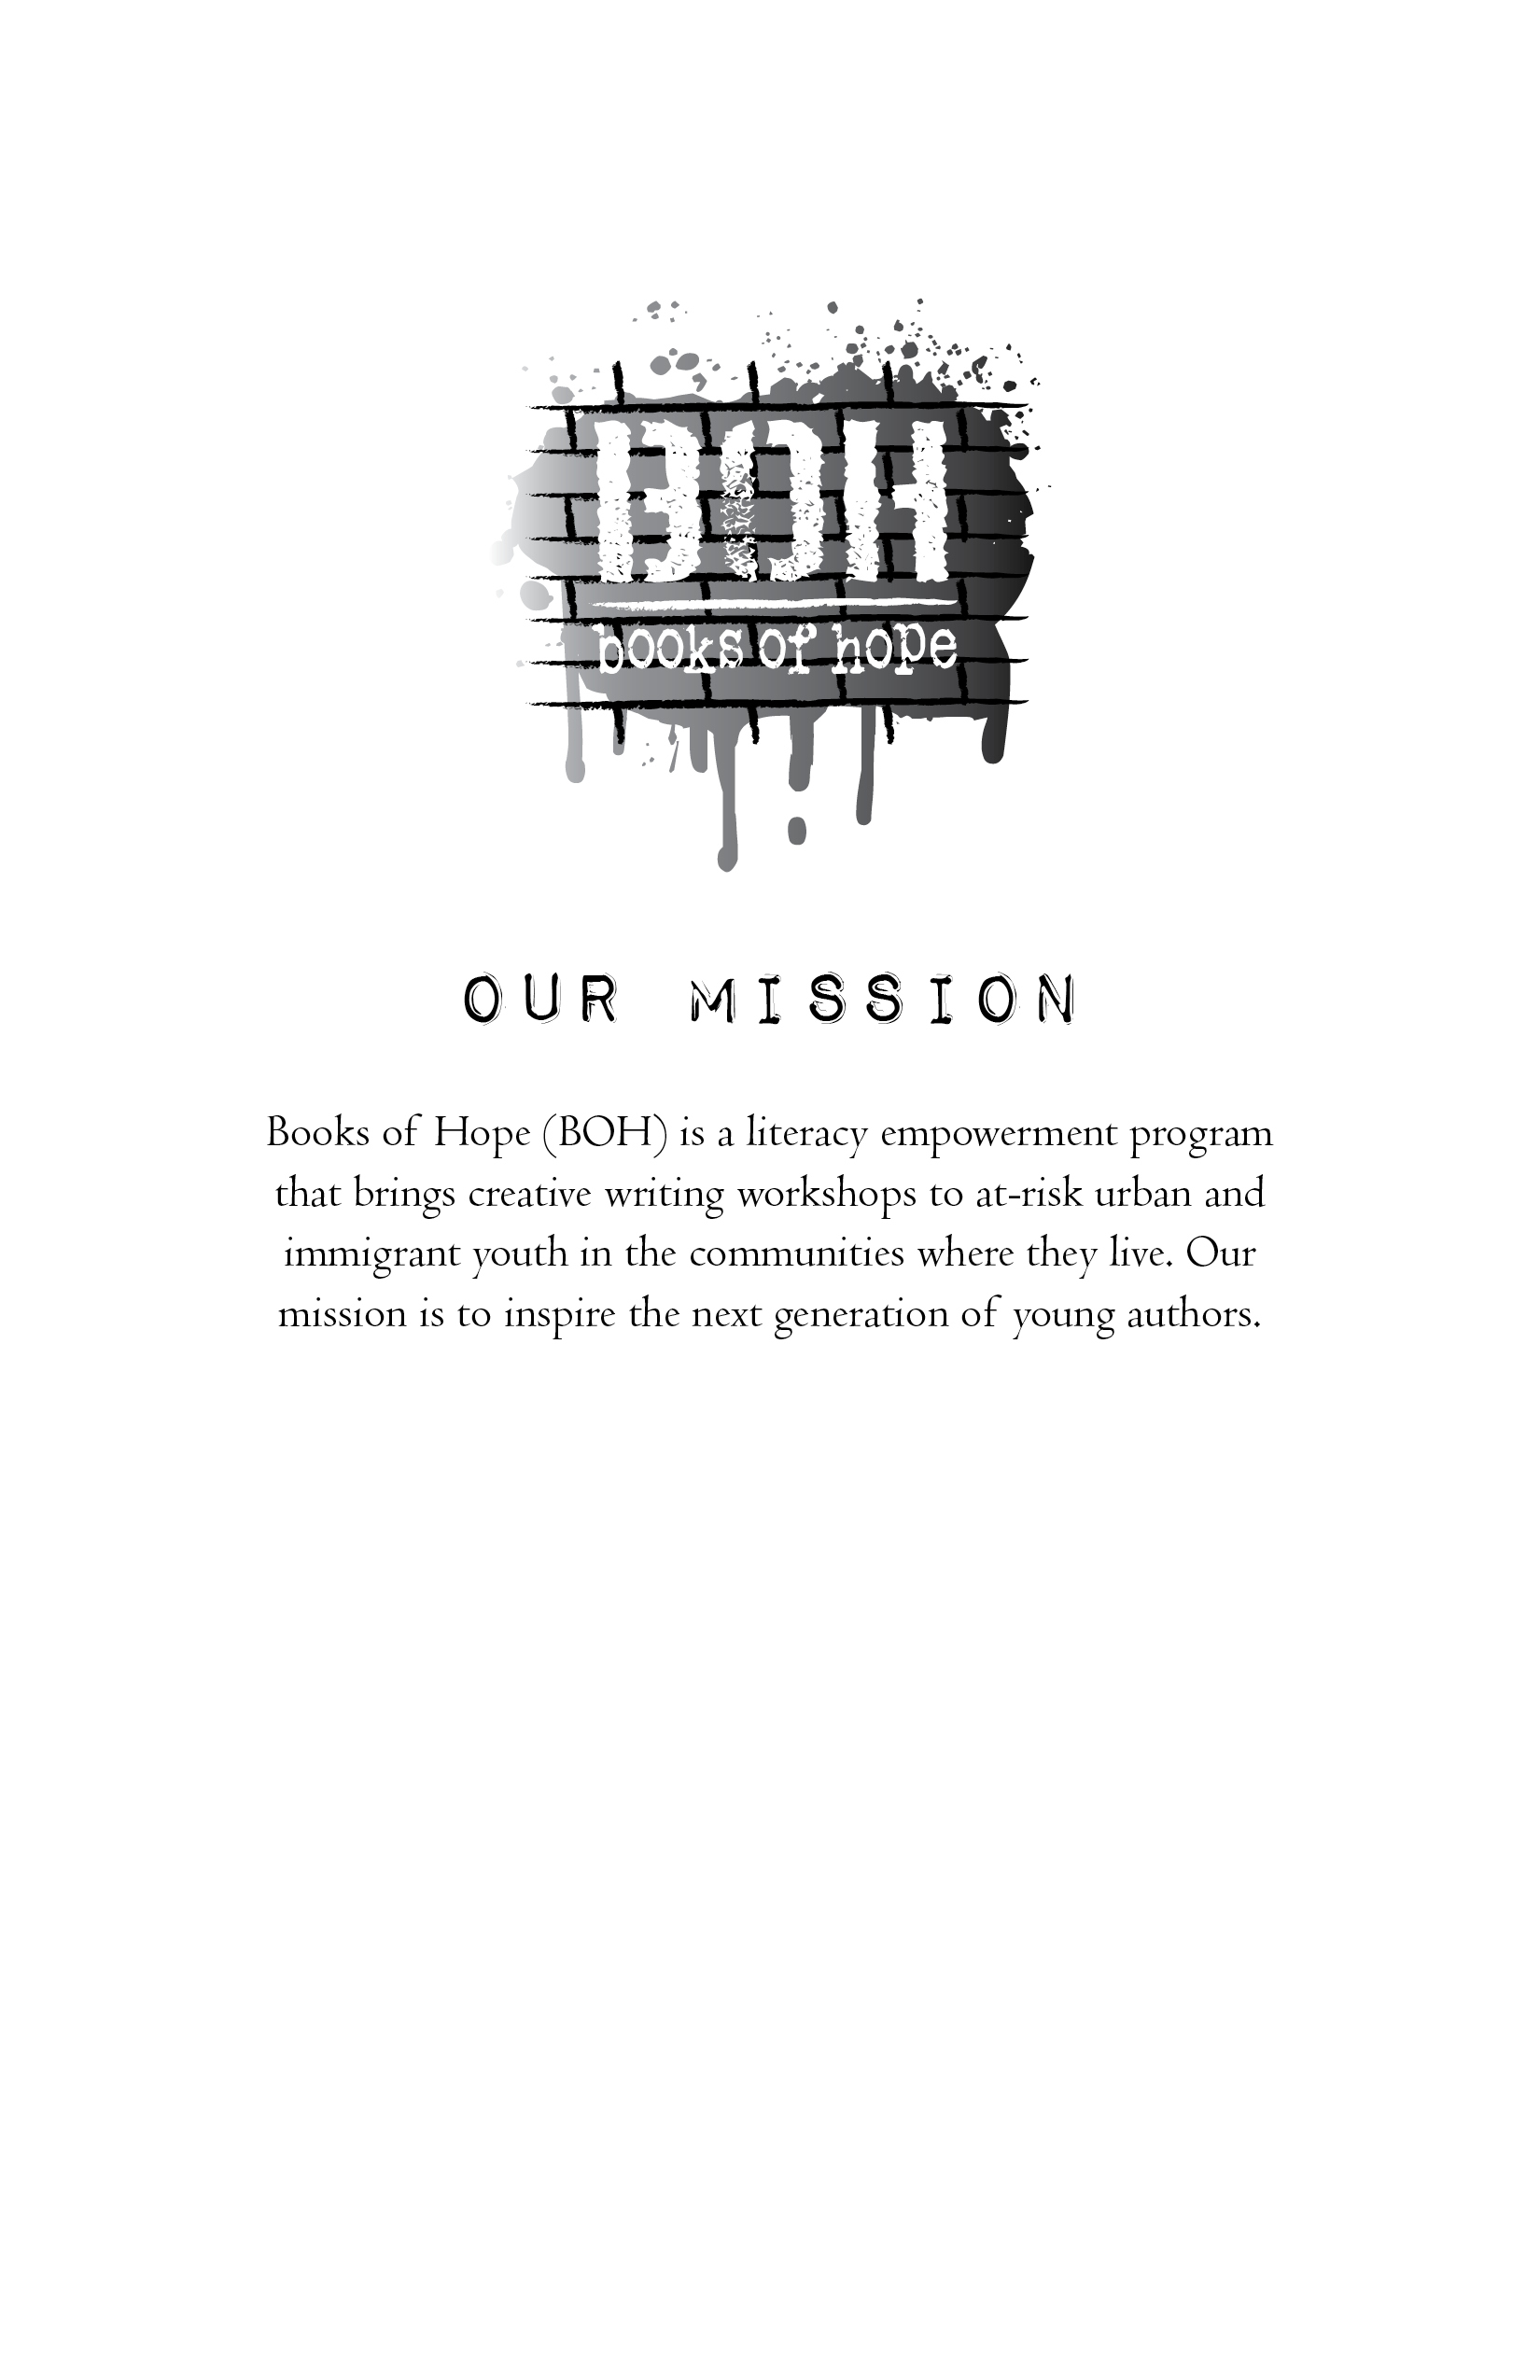 Mission statement for BOOKS OF HOPE